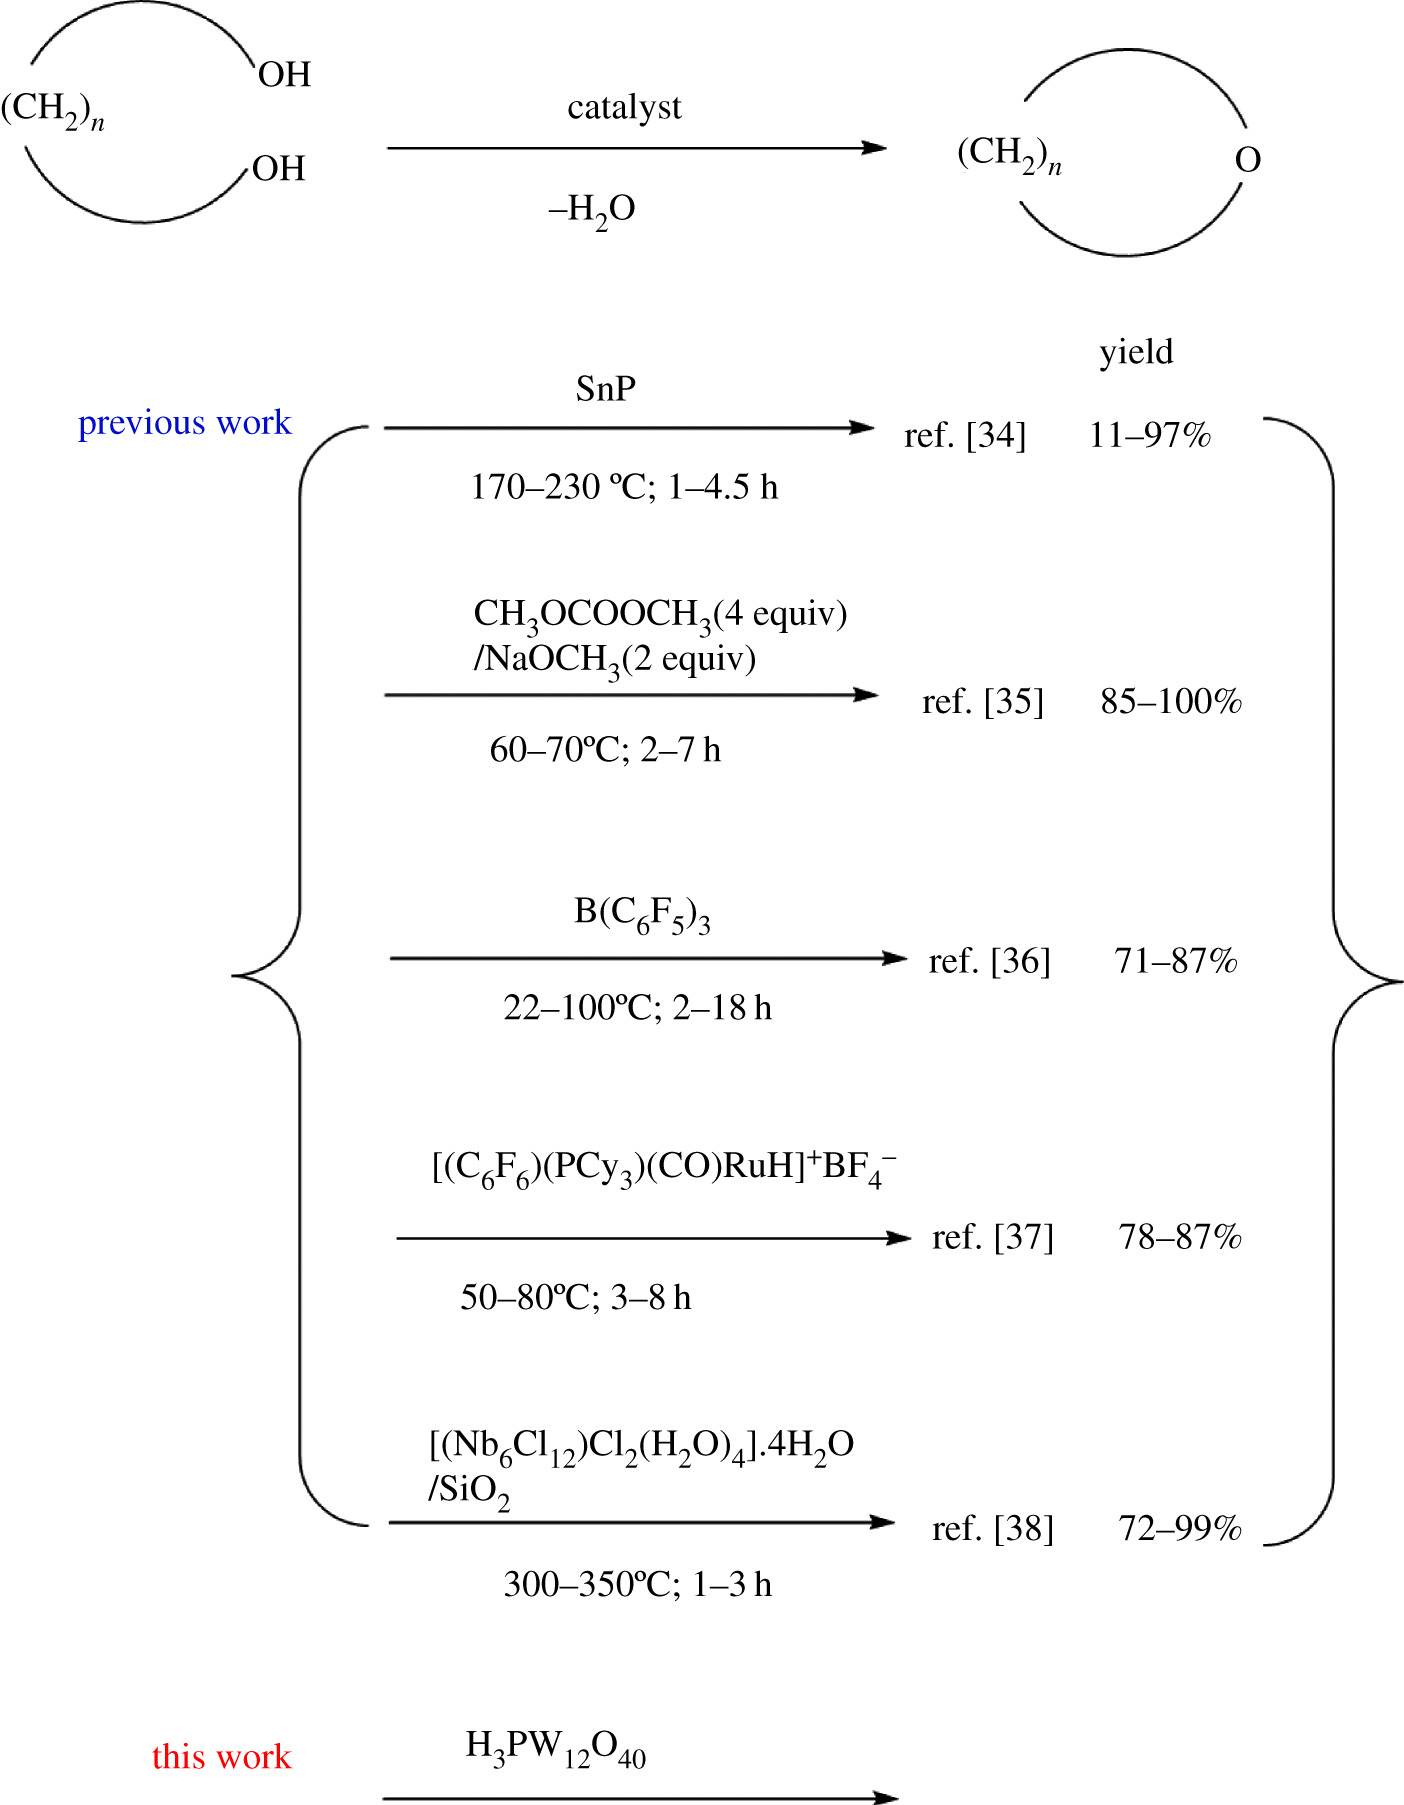 Synthesis of cyclic ethers by cyclodehydration of 1,n-diols using